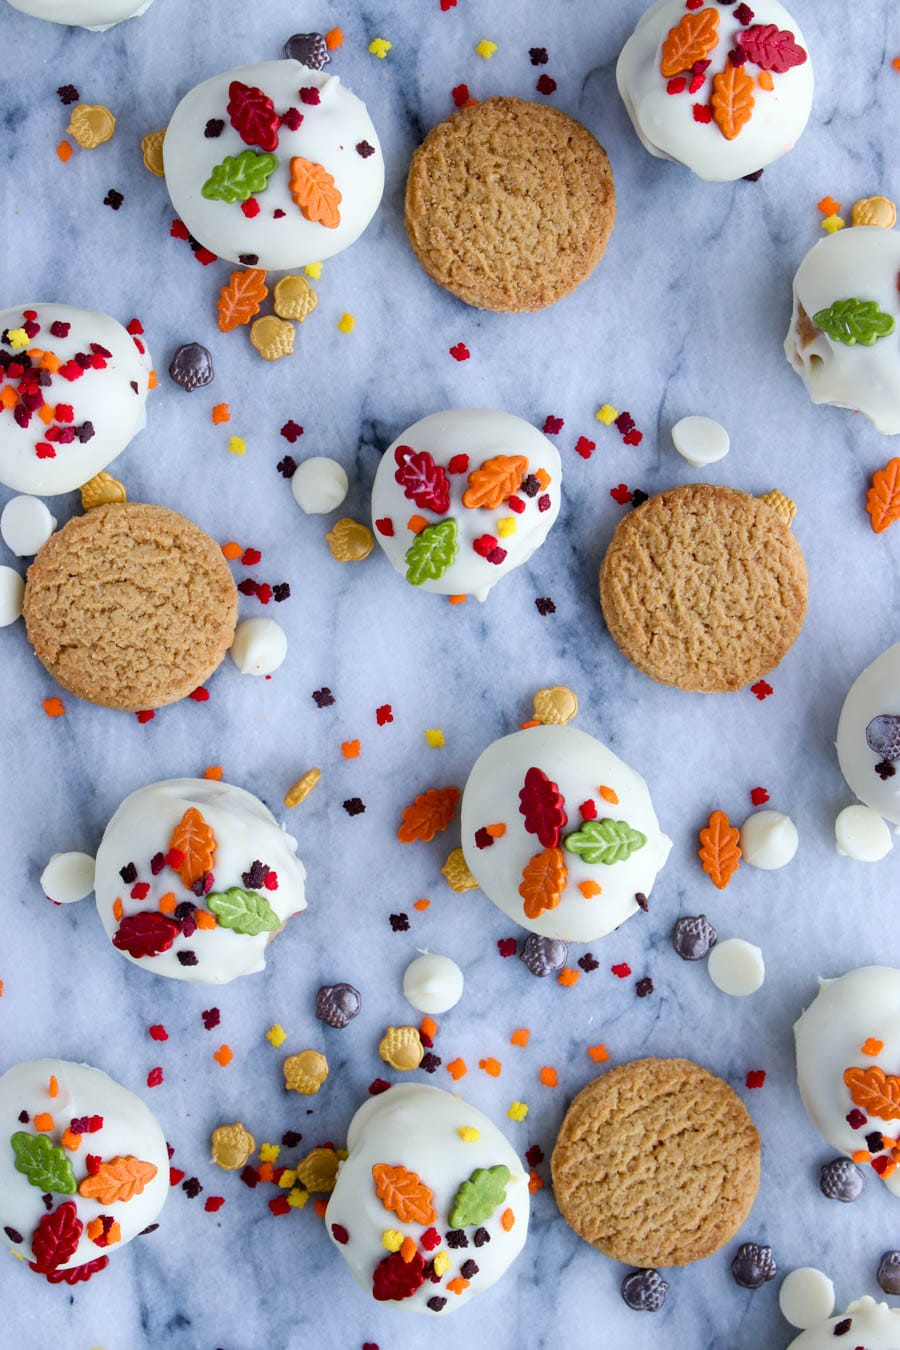 Cookies and sprinkles spread out on a marble background